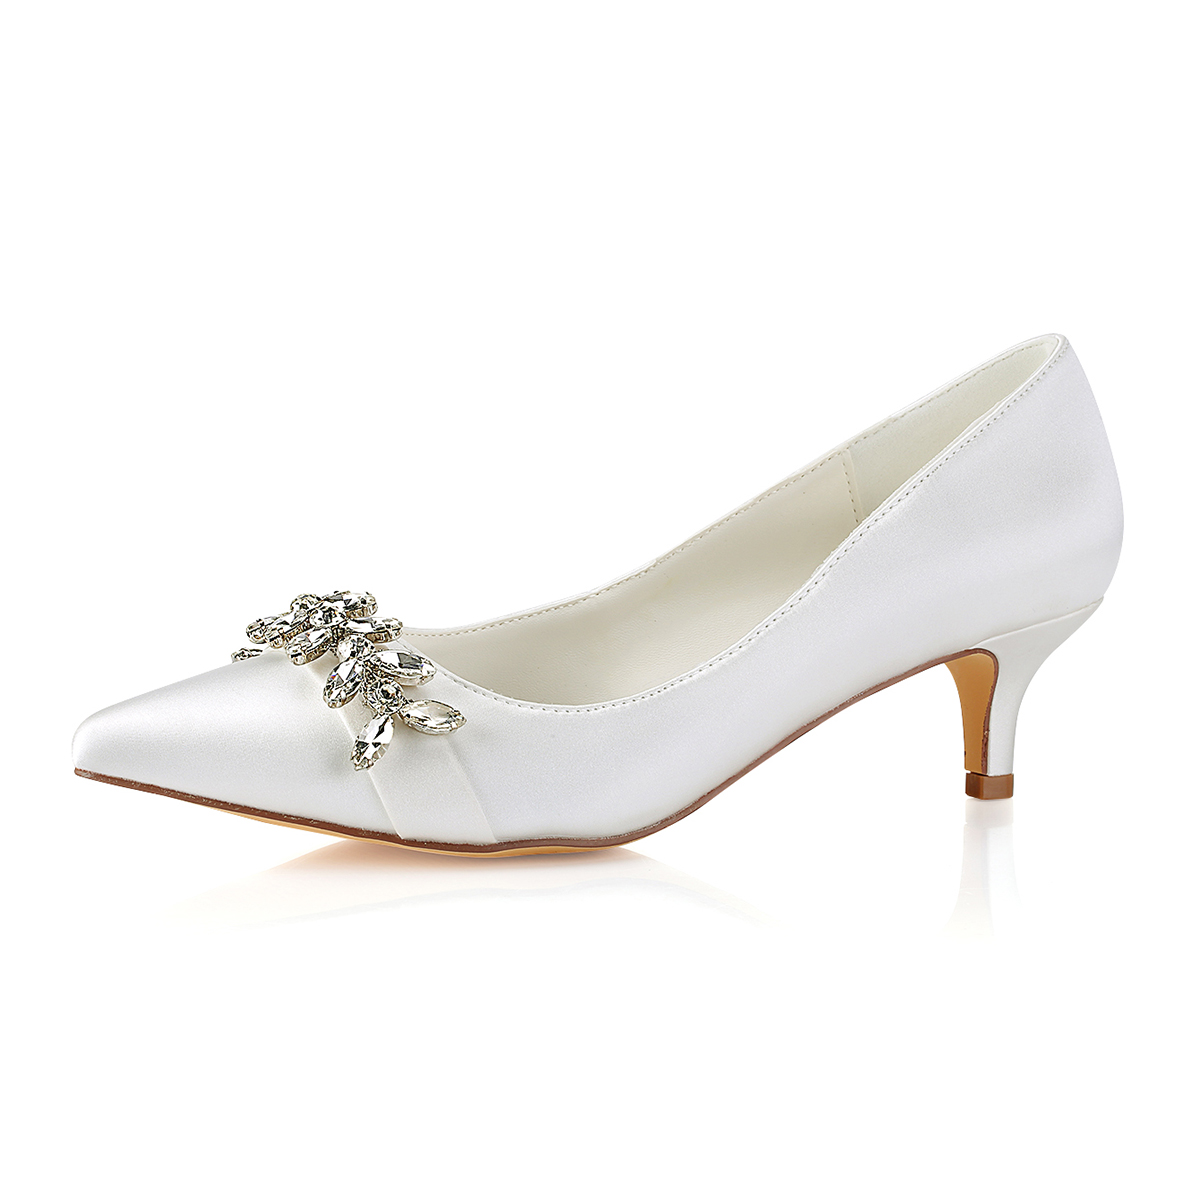 Close Toe Low Heel Ivory Satin With Crystal Wedding Shoes